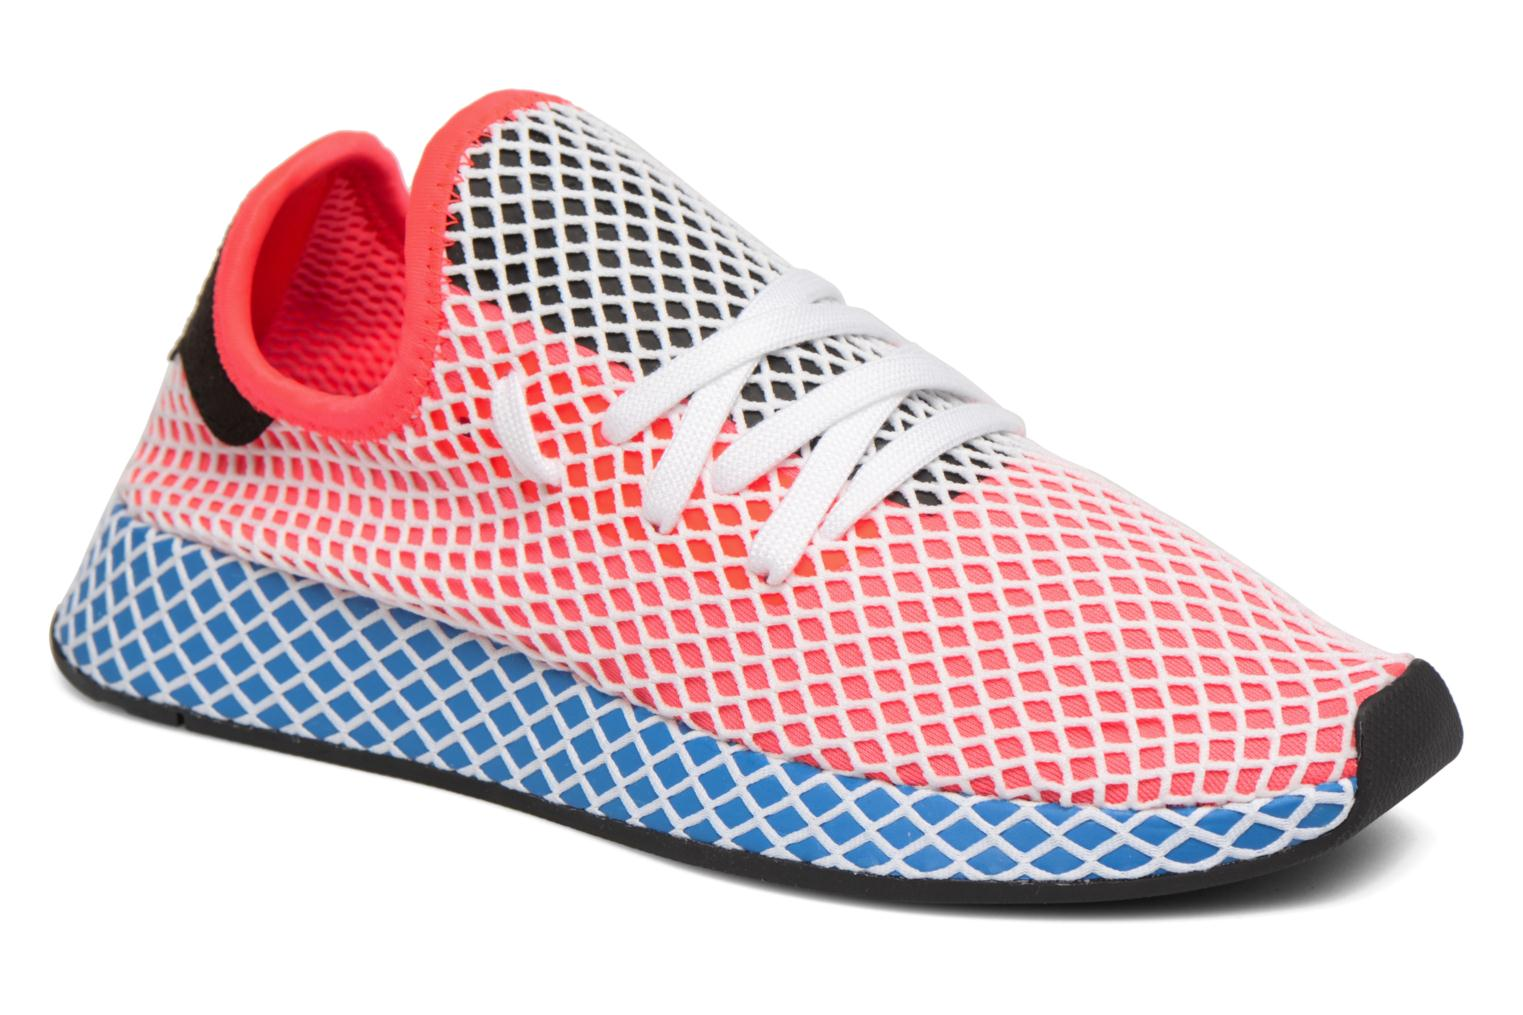 Baskets Chez Runner Adidas rouge Originals Sarenza 323131 Deerupt 1I6w4